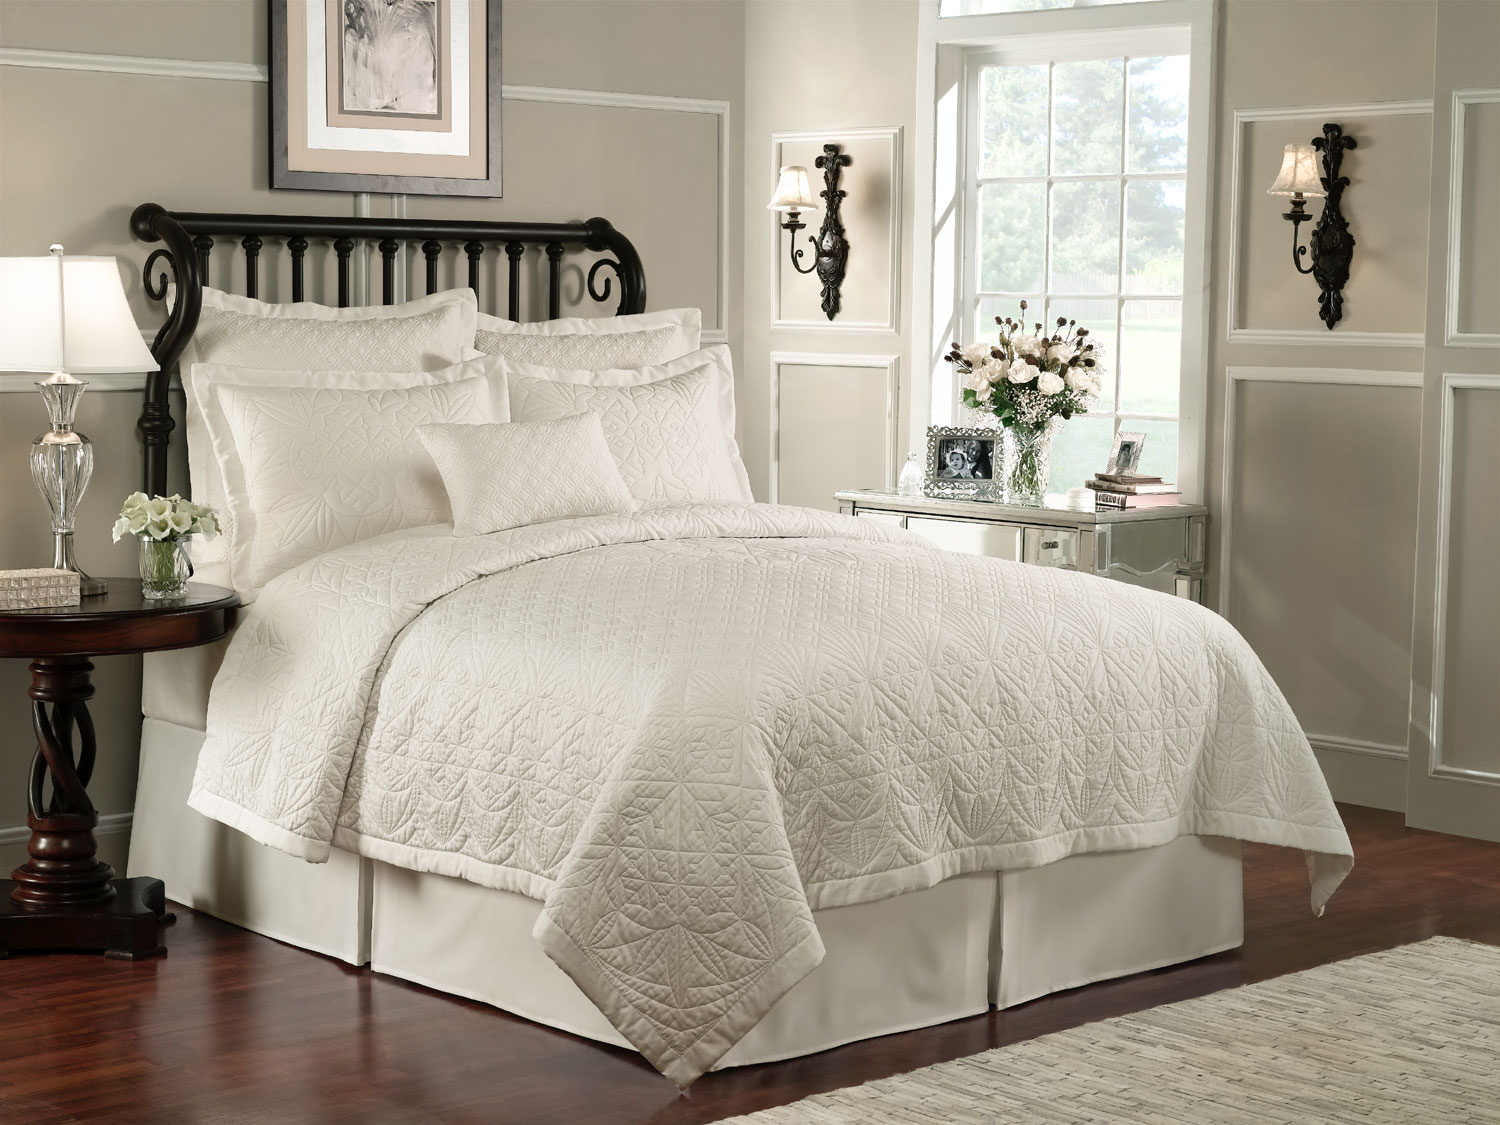 Lismore Quilt Ivory By Waterford Luxury Bedding